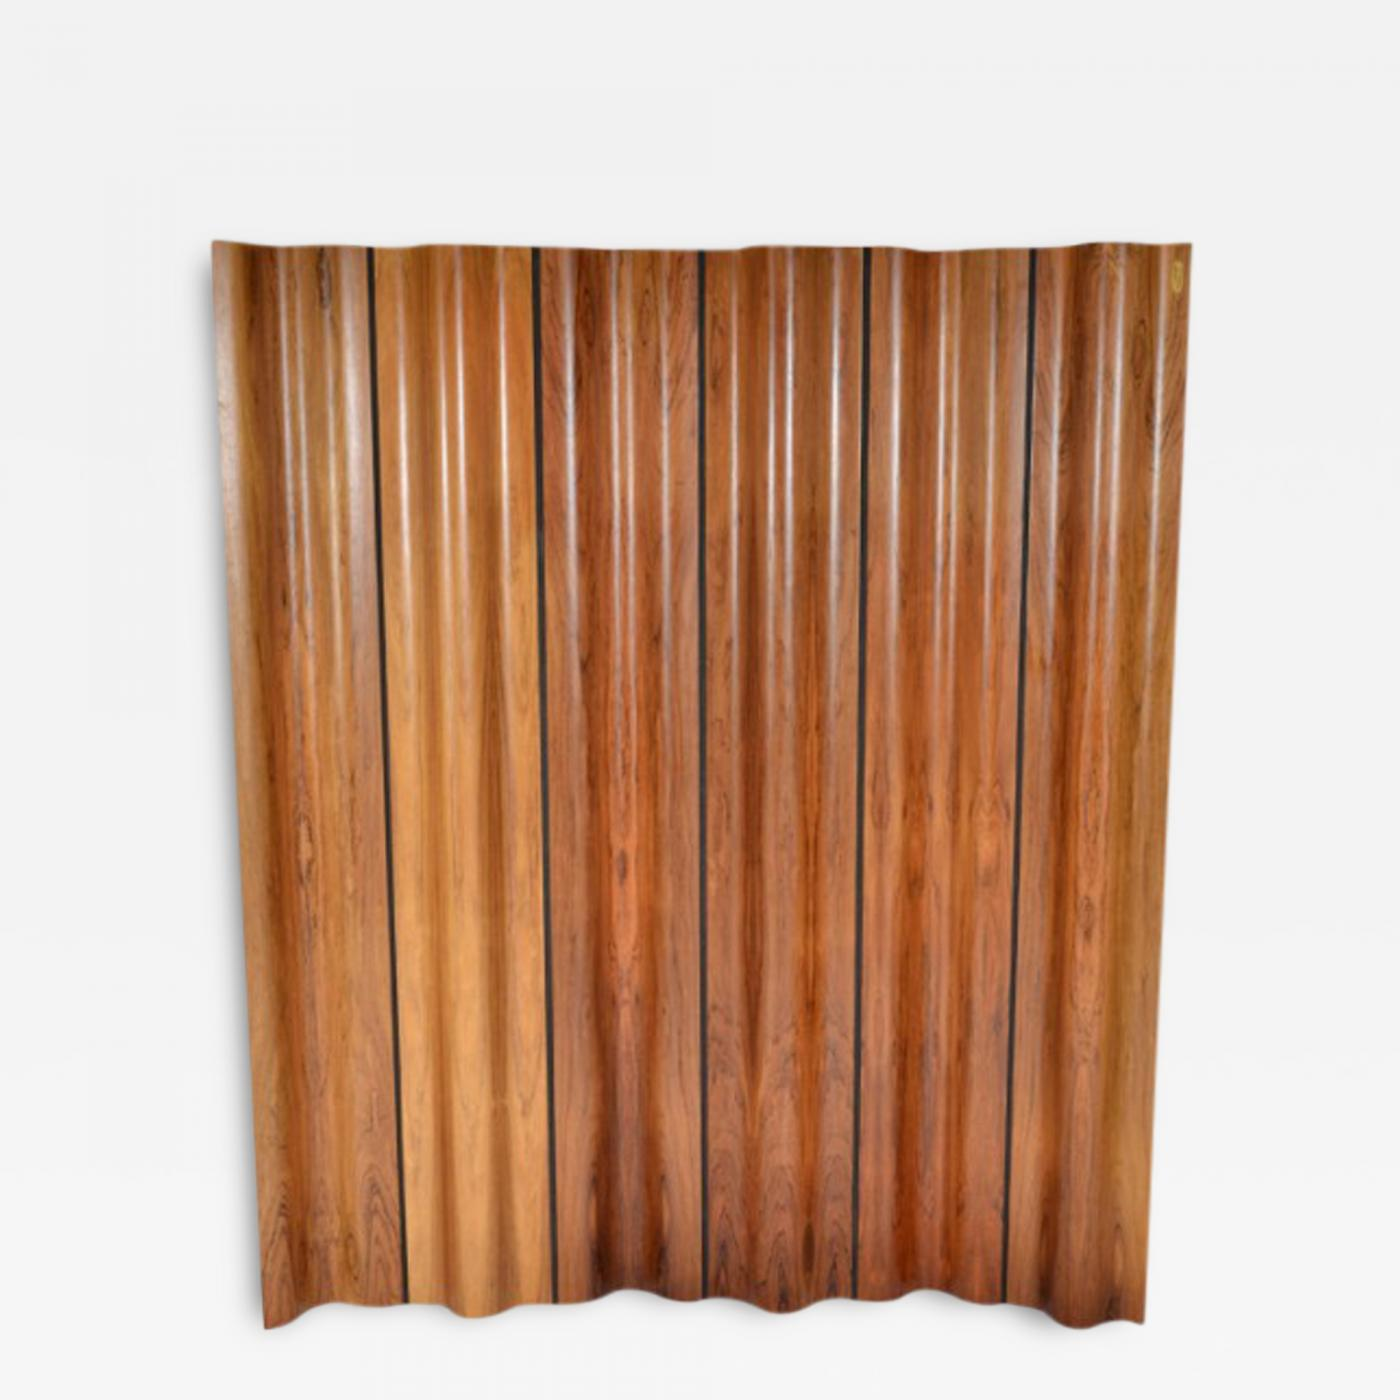 Charles & Ray Eames Molded Rosewood Plywood Folding Screen FSW 6